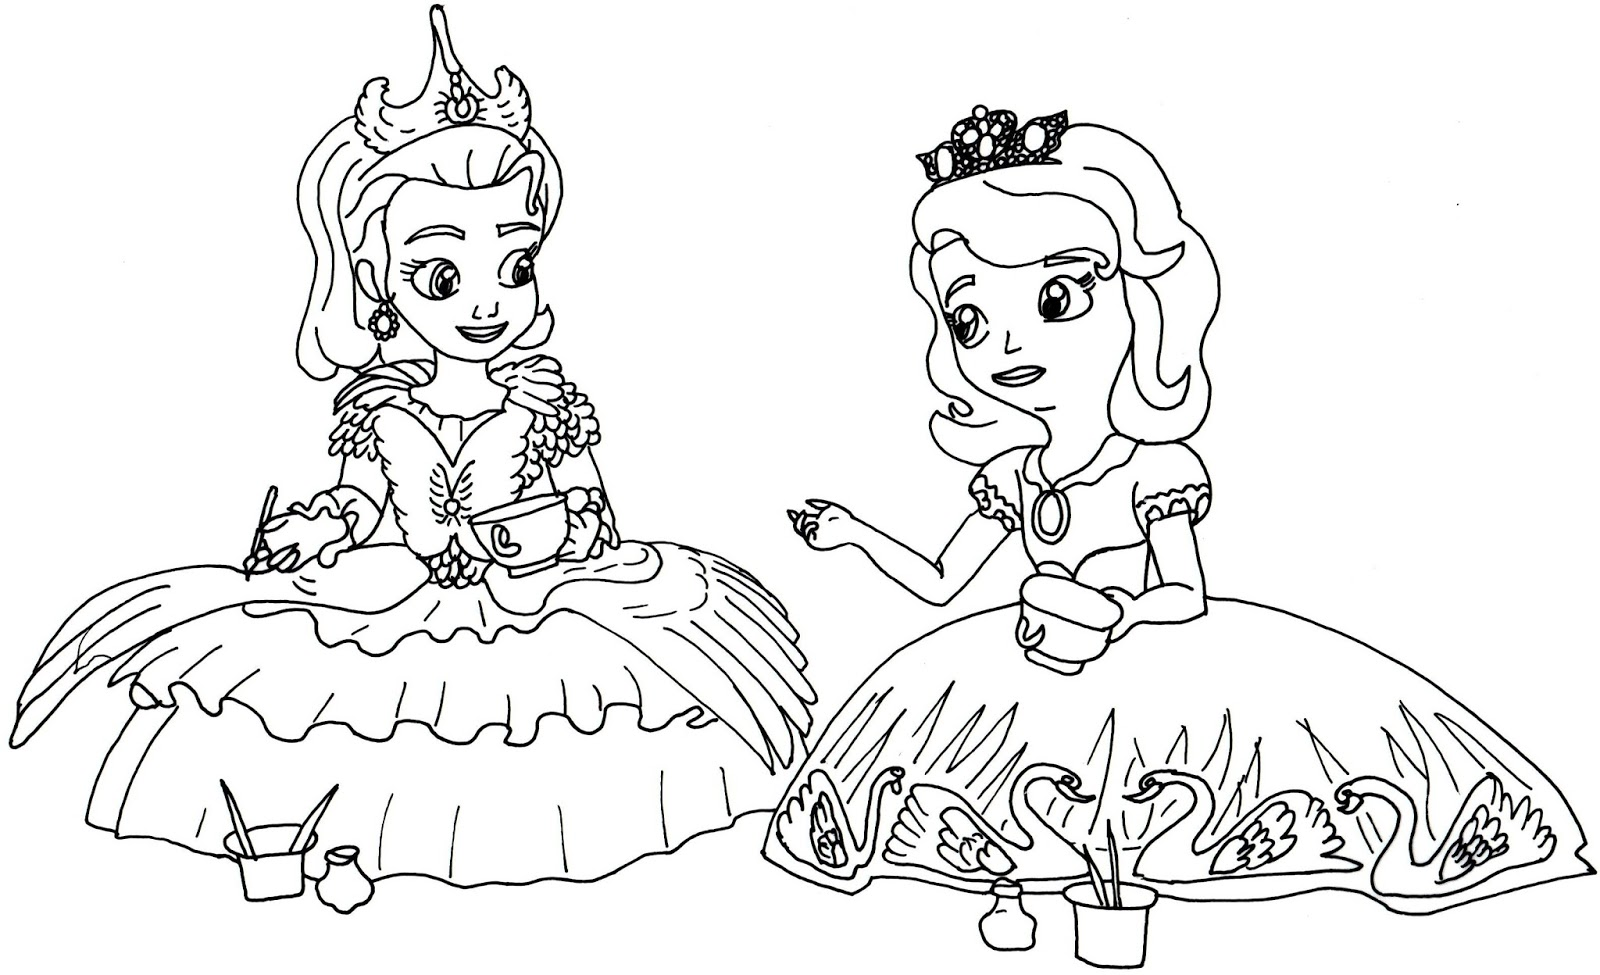 Sofia The First Printable Coloring Pages At Getdrawings Free